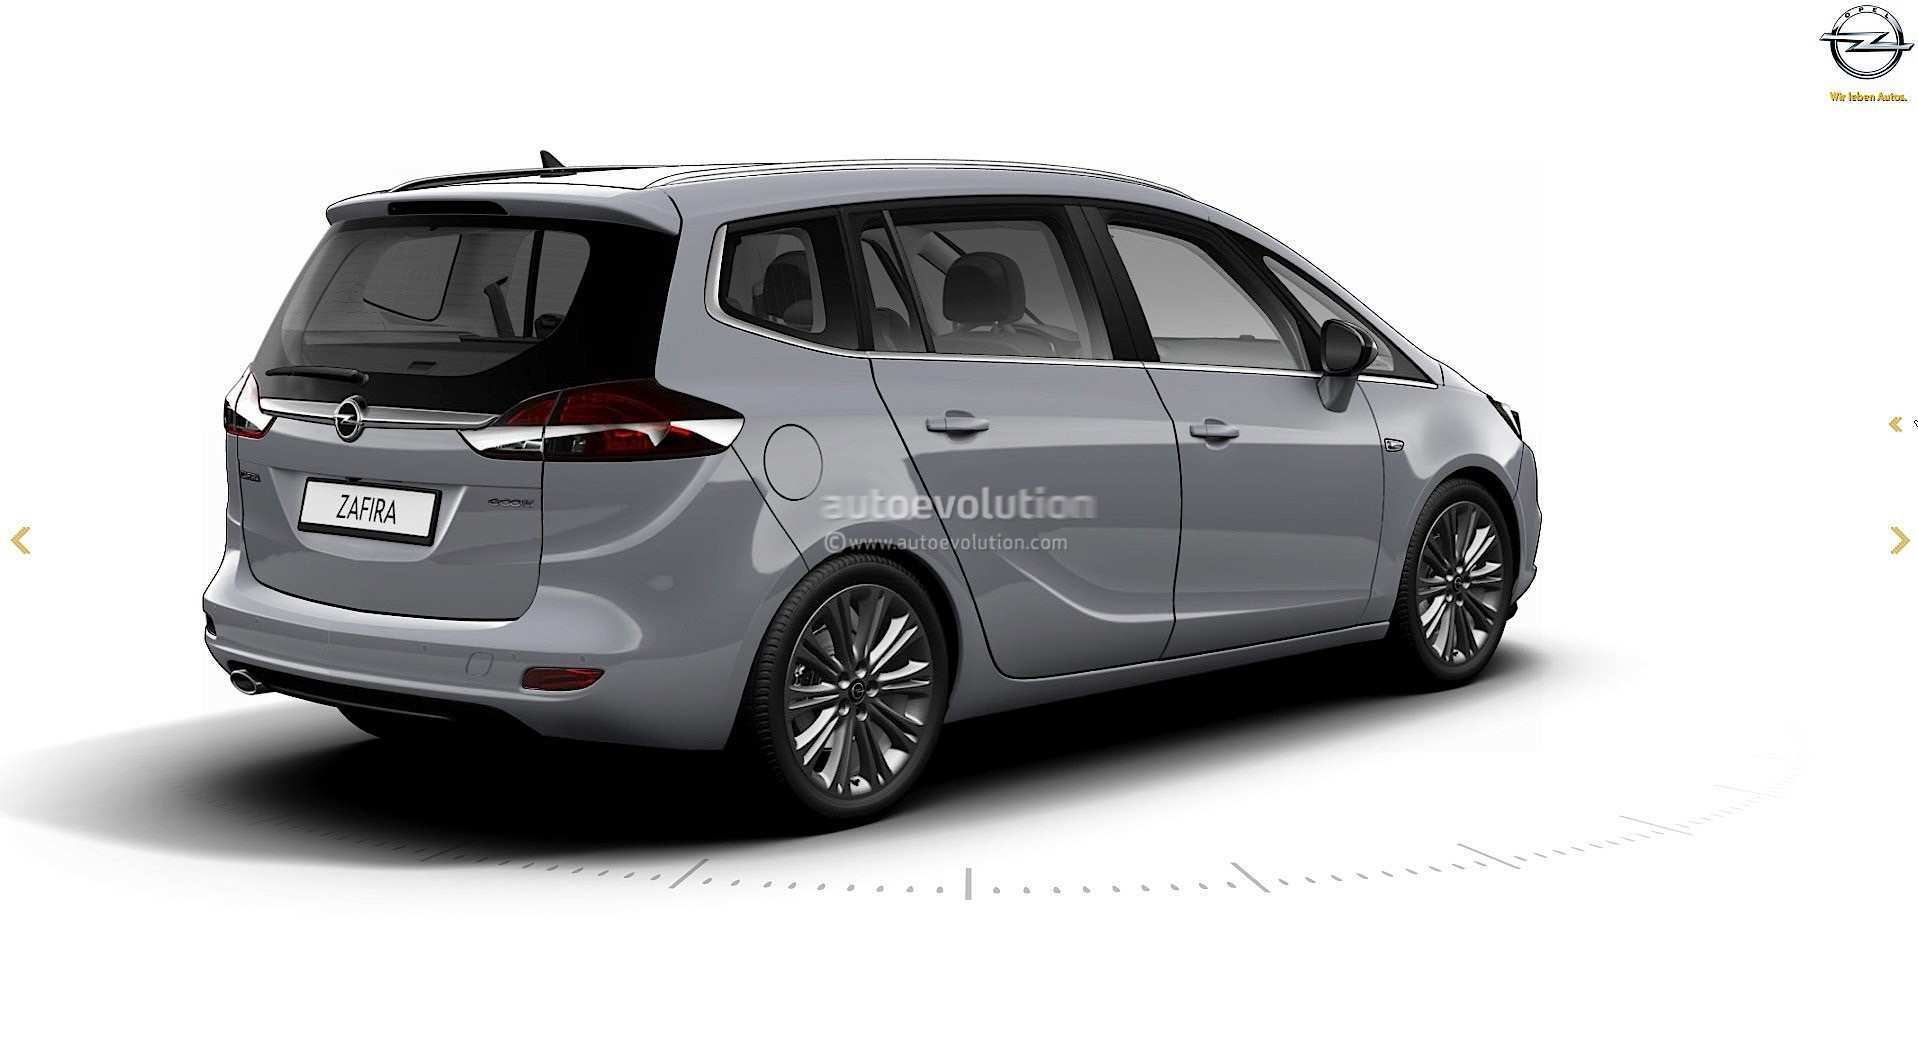 54 Great New Opel Zafira 2020 Exterior and Interior by New Opel Zafira 2020